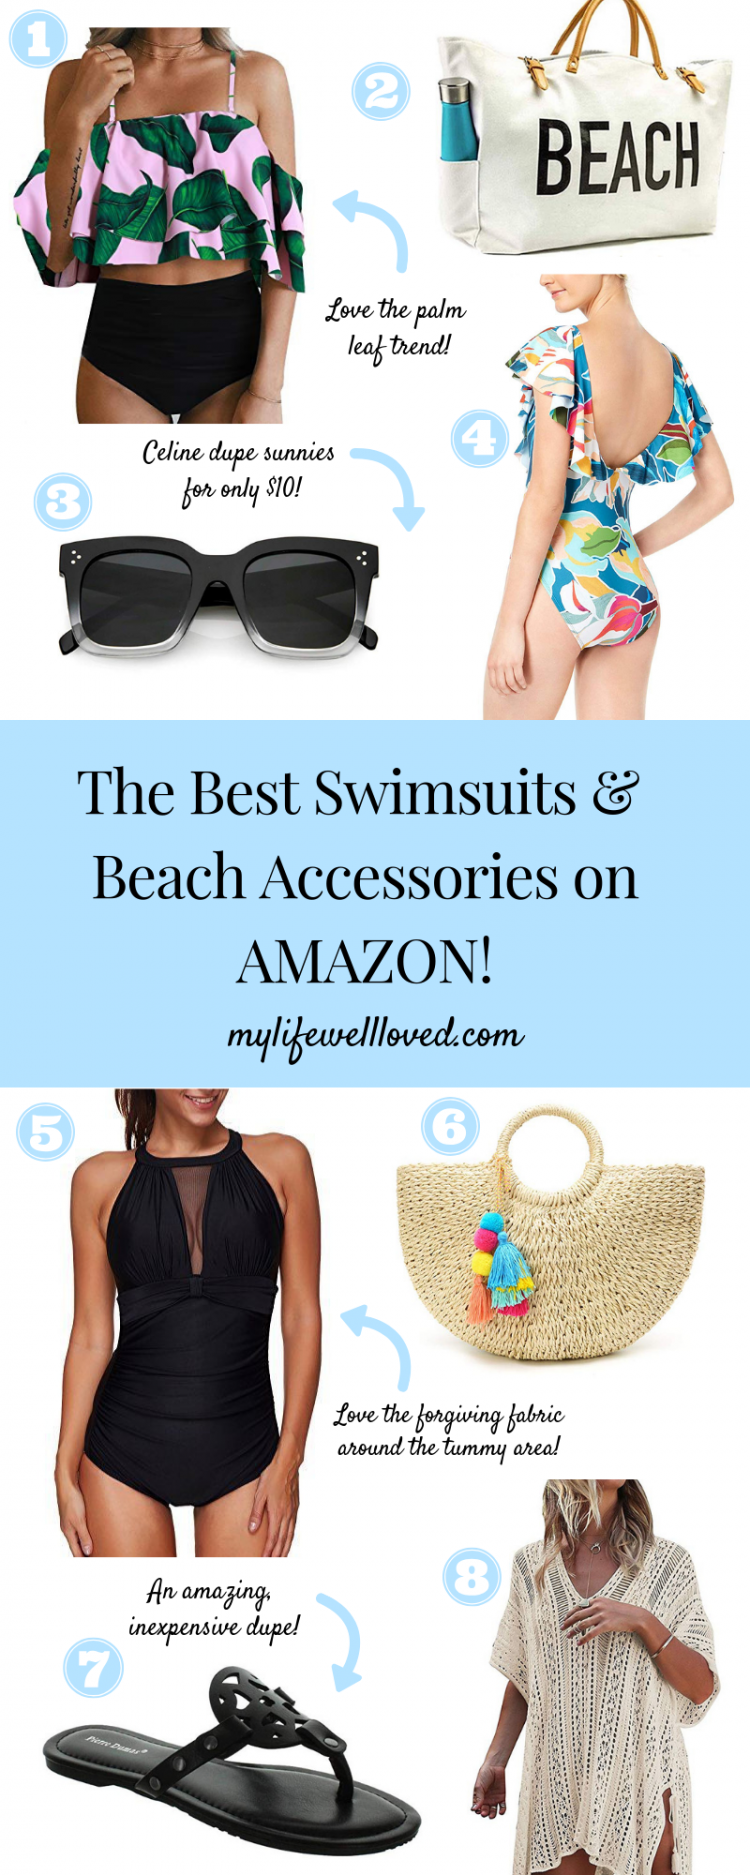 Sharing my favorite swimsuits and accessories for the season by Alabama lifestyle blogger, Heather Brown // My Life Well Loved